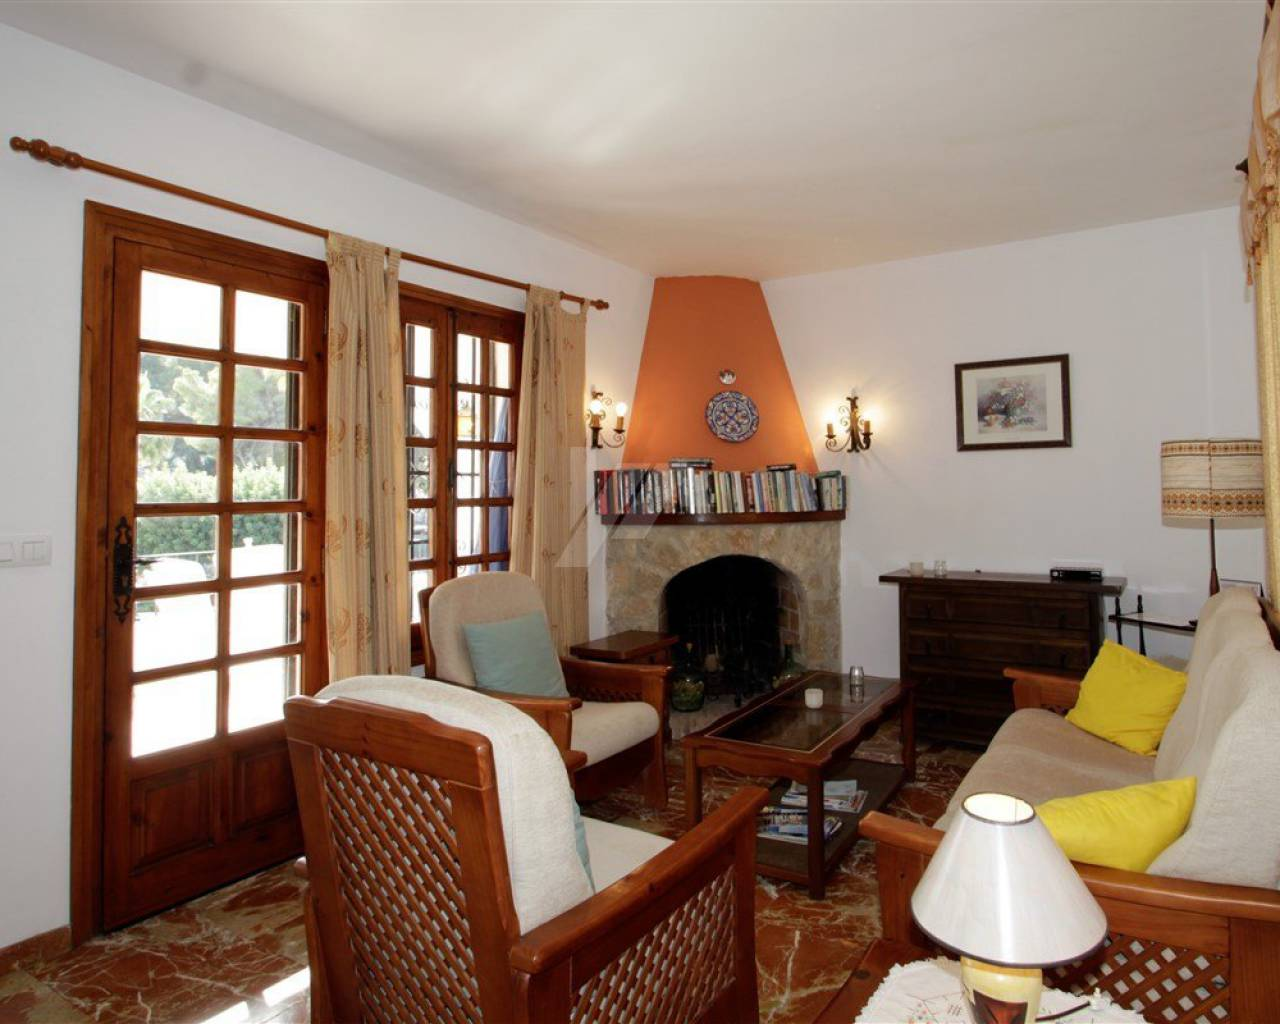 Sale - Bungalow - Moraira - Pla del Mar